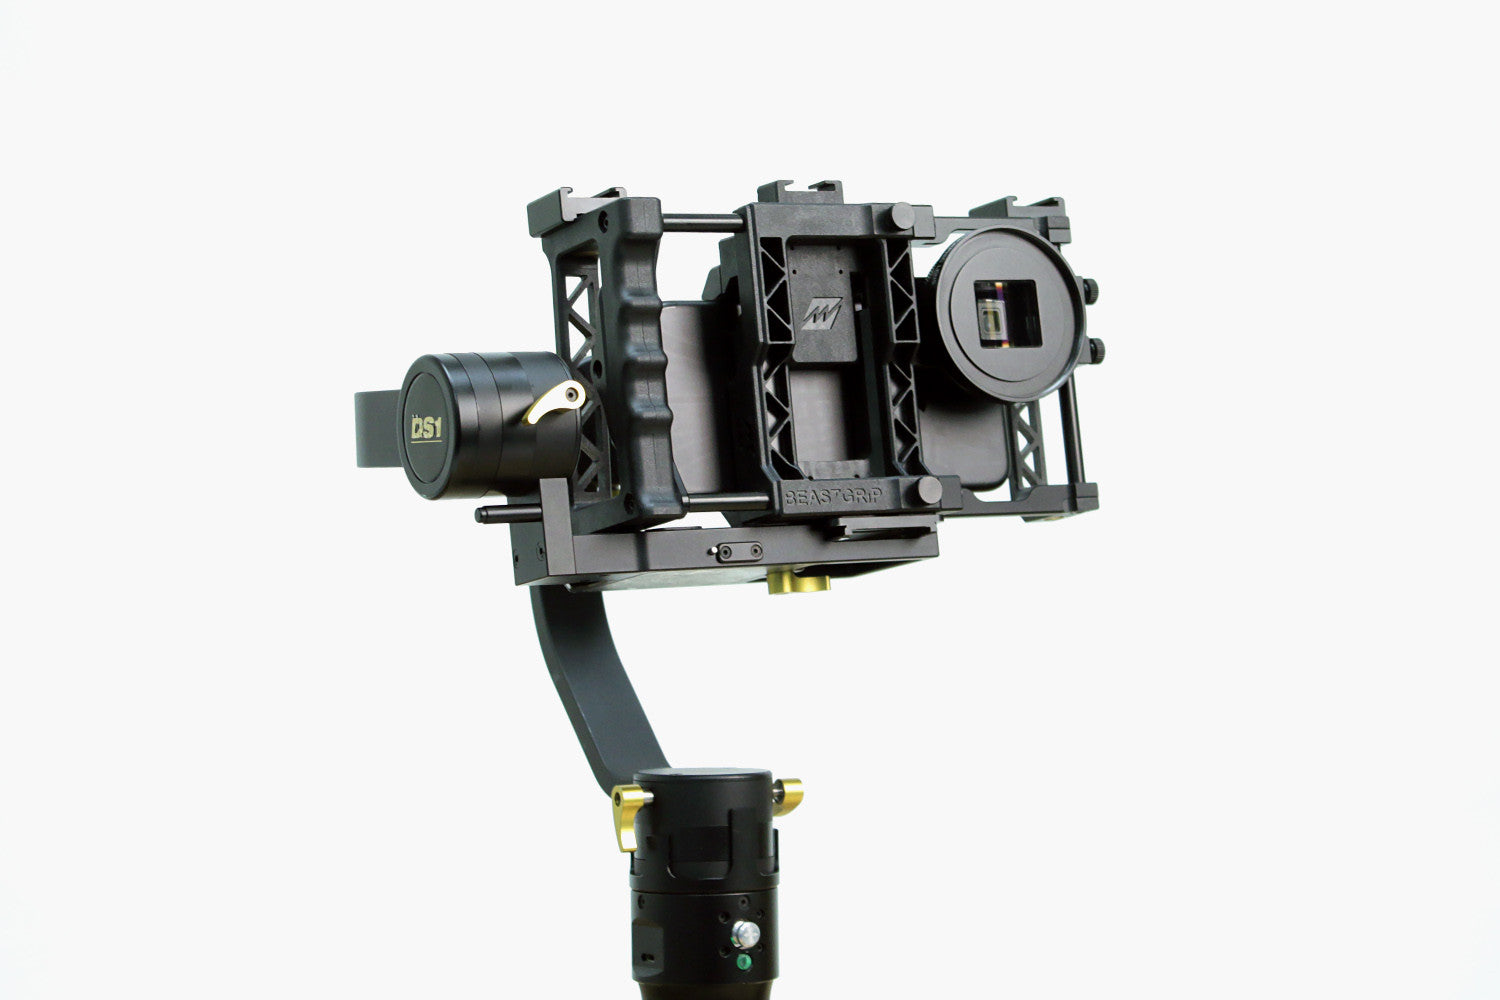 Beastgrip Pro with  a Beastgrip Pro Series 1.33X Anamorphic Lens on an Owl Dolly DS1 Gimbal